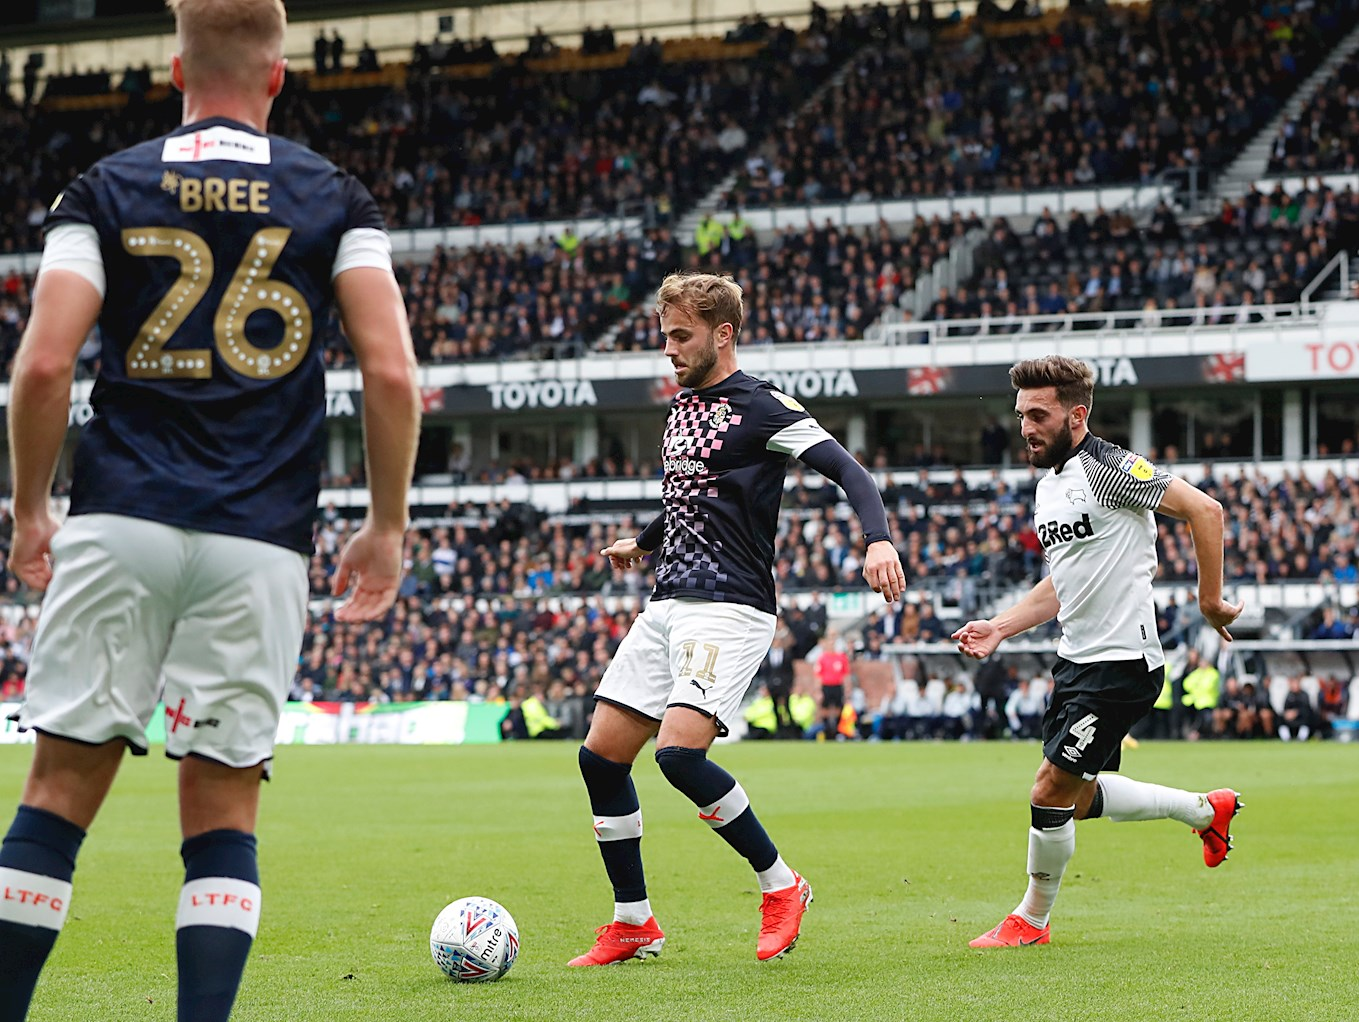 Hatters playmaker Andrew Shinnie shields the ball from his brother Graeme, the Derby County midfielder, in the game at Pride Park